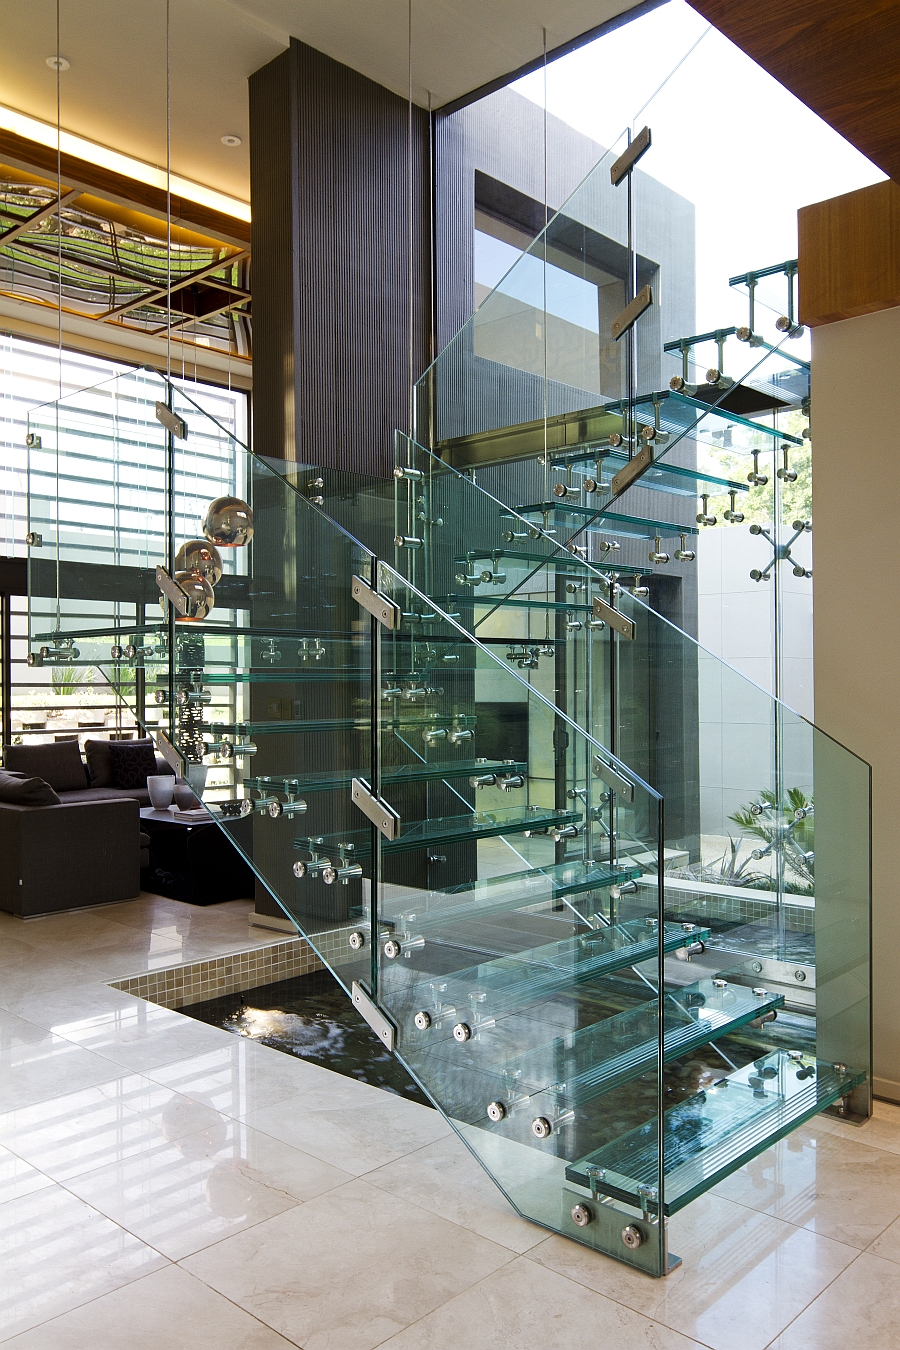 Enthralling Glass Staircases That Add Sculptural Style To